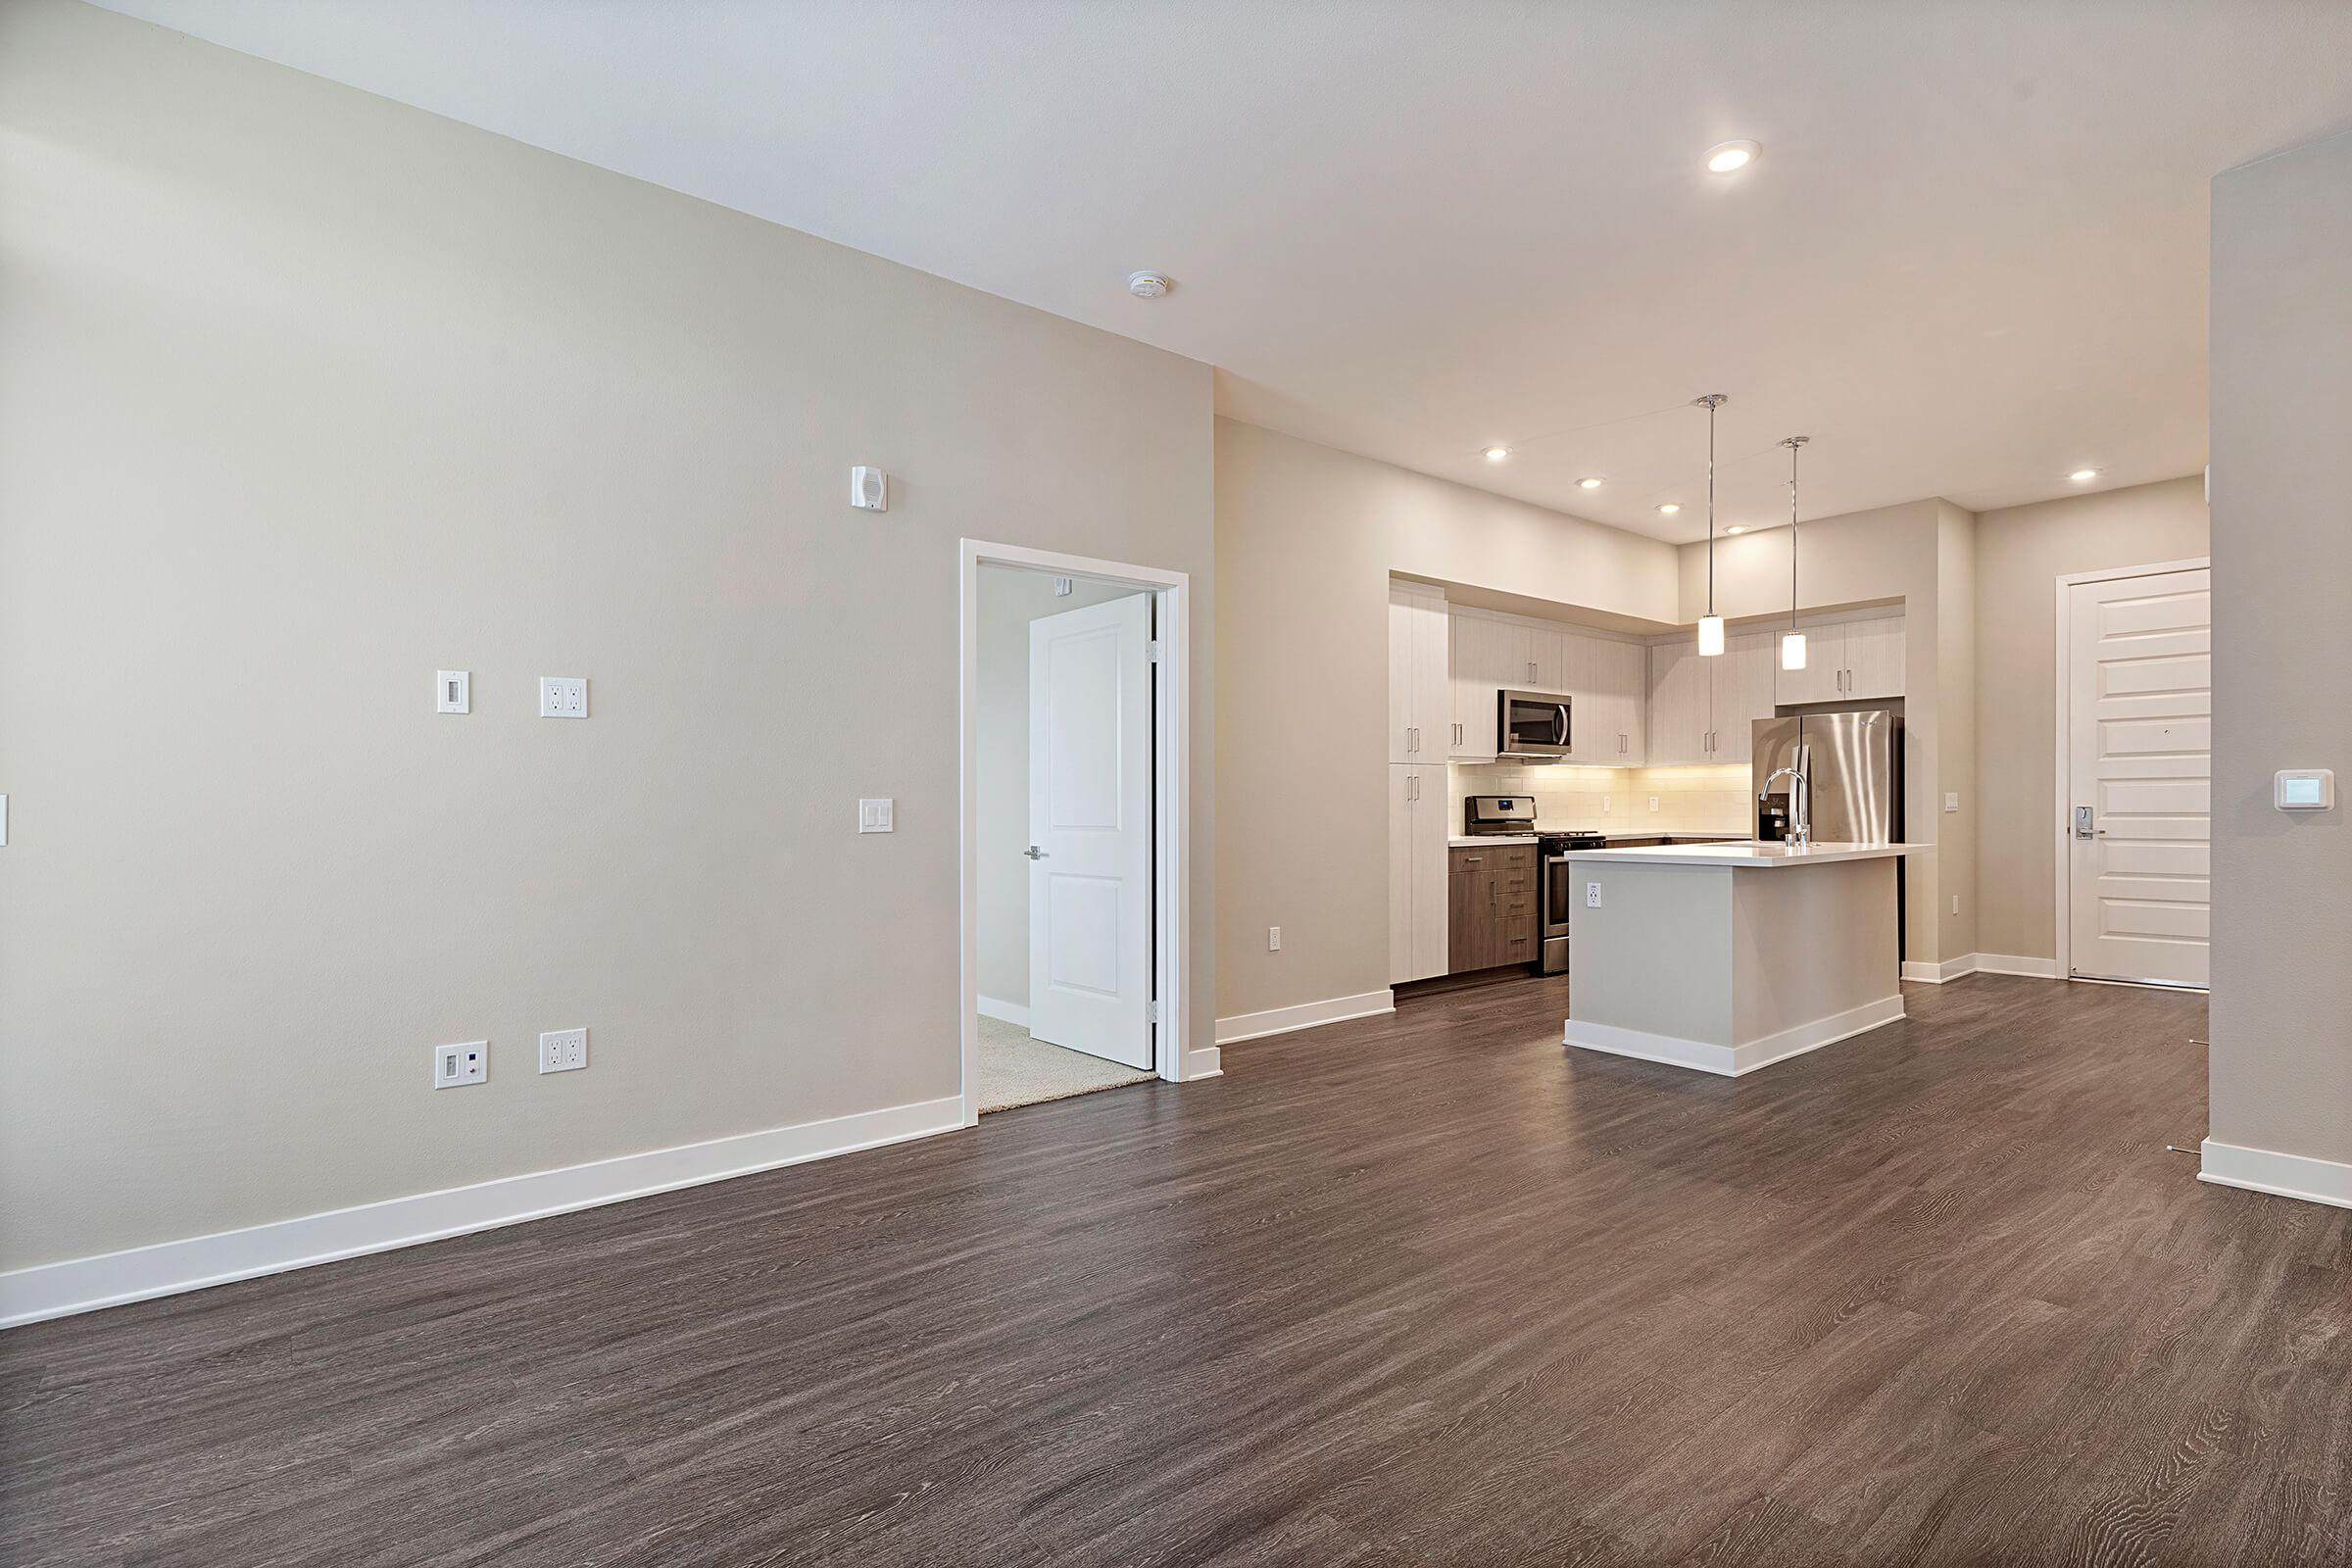 Living room and kitchen with wooden floors